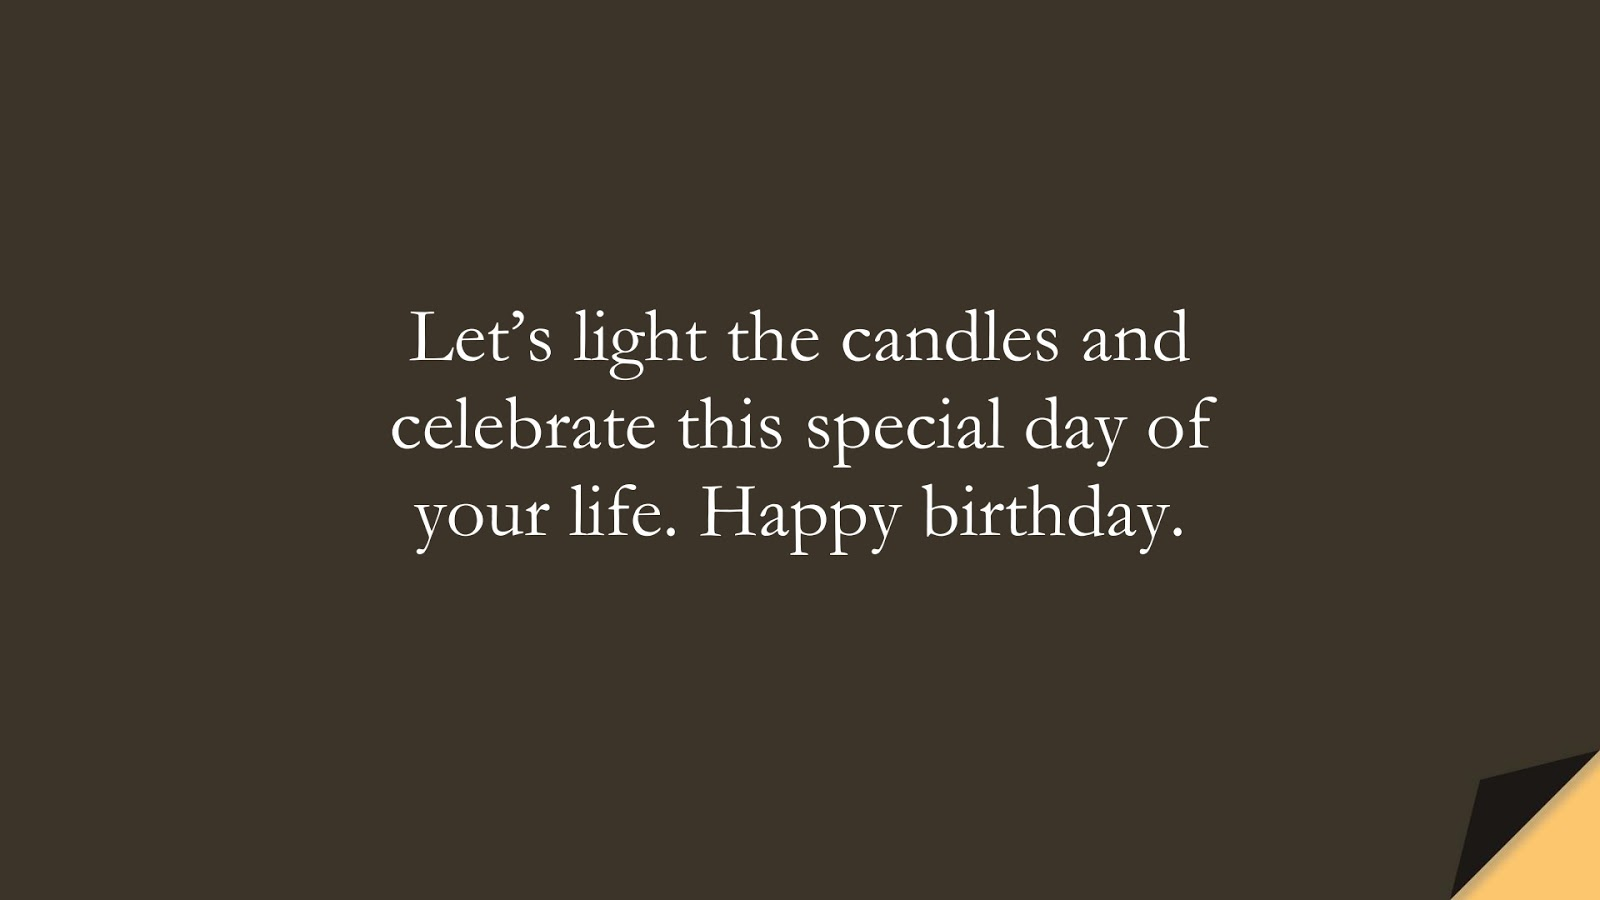 Let's light the candles and celebrate this special day of your life. Happy birthday.FALSE